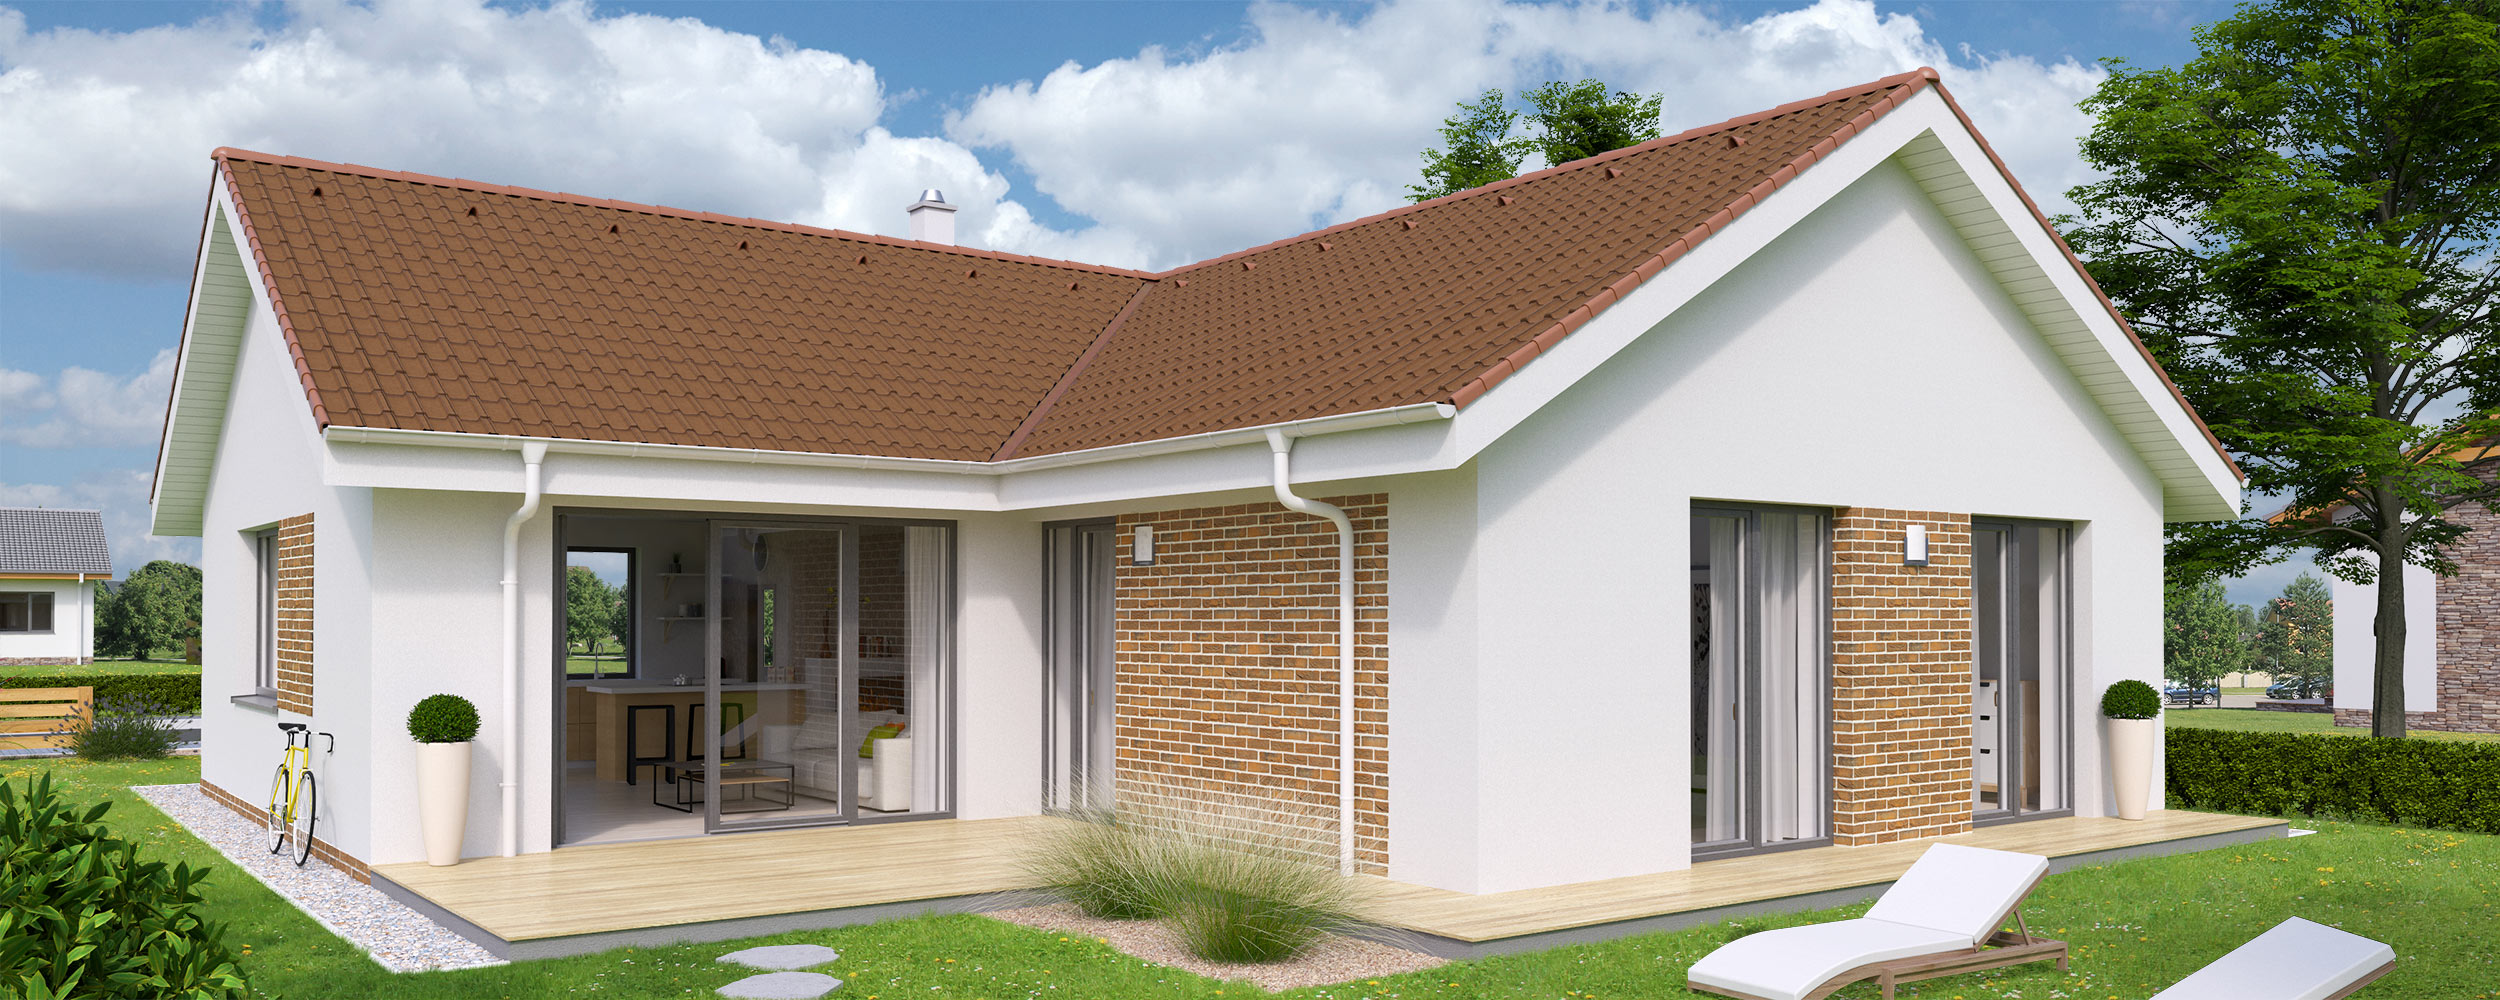 Plans of Bungalow L120